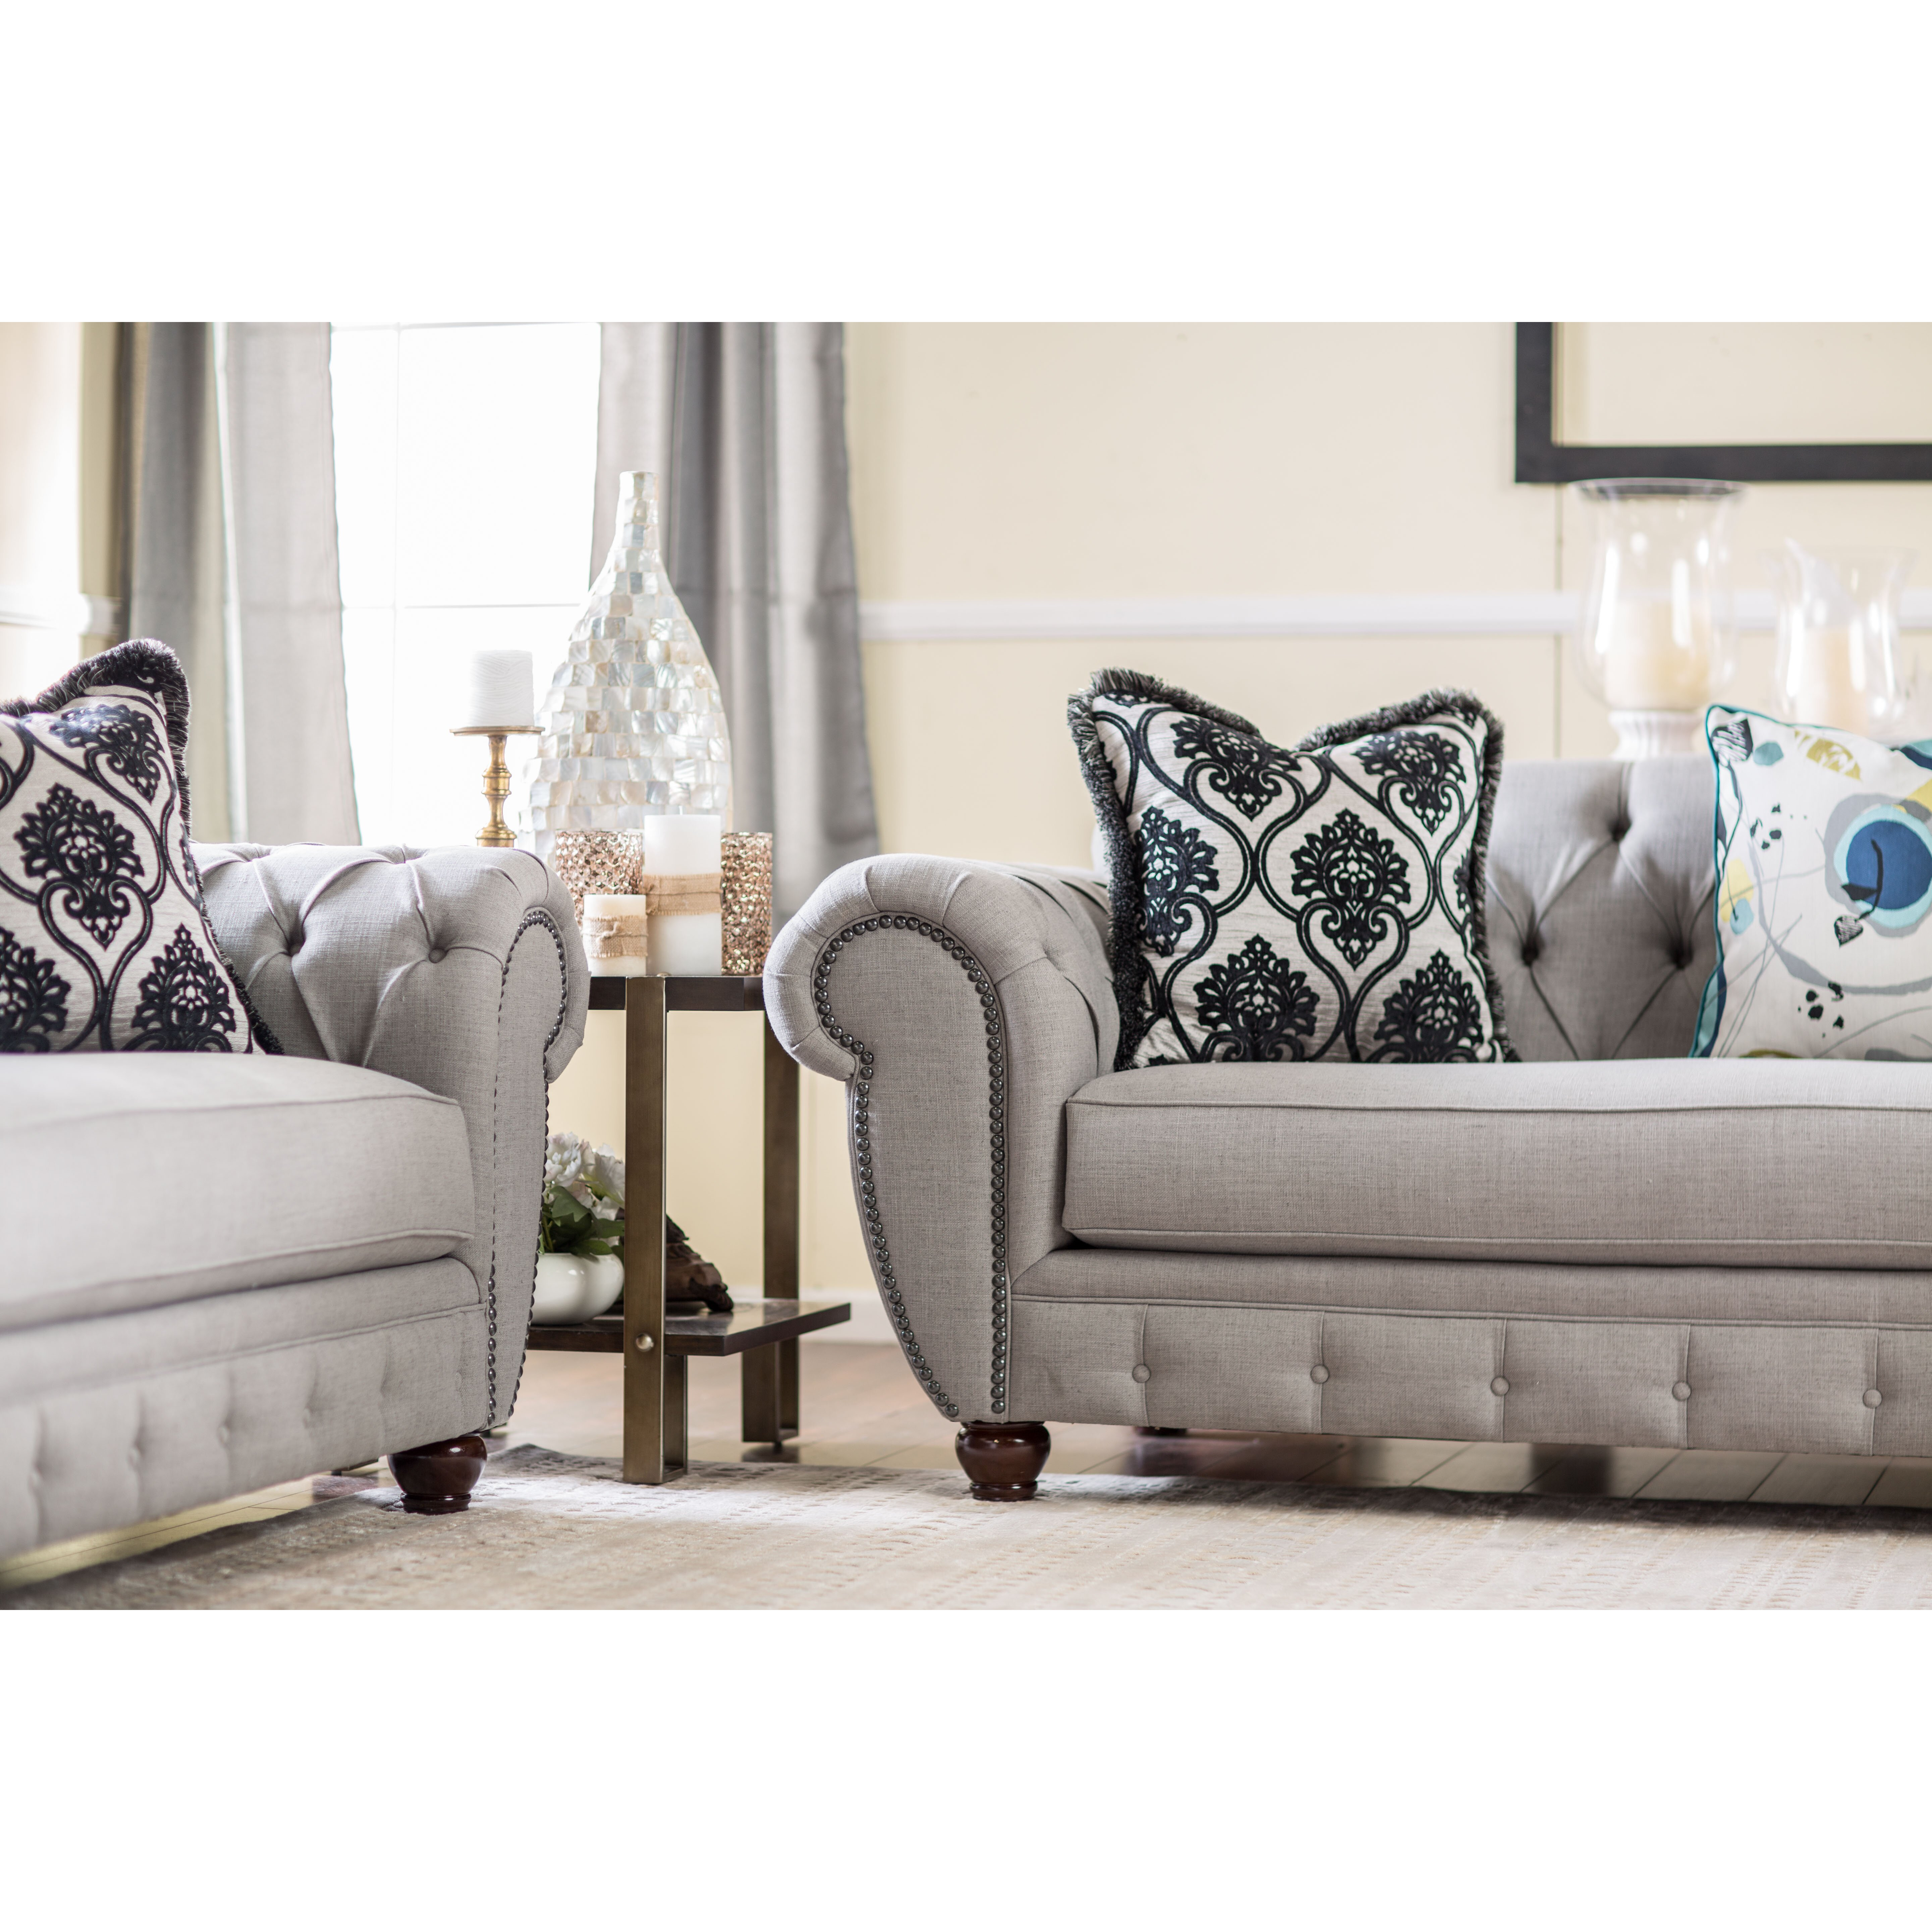 Living Room With Chesterfield Sofa Darby Home Co Suffield Chesterfield Sofa Reviews Wayfair